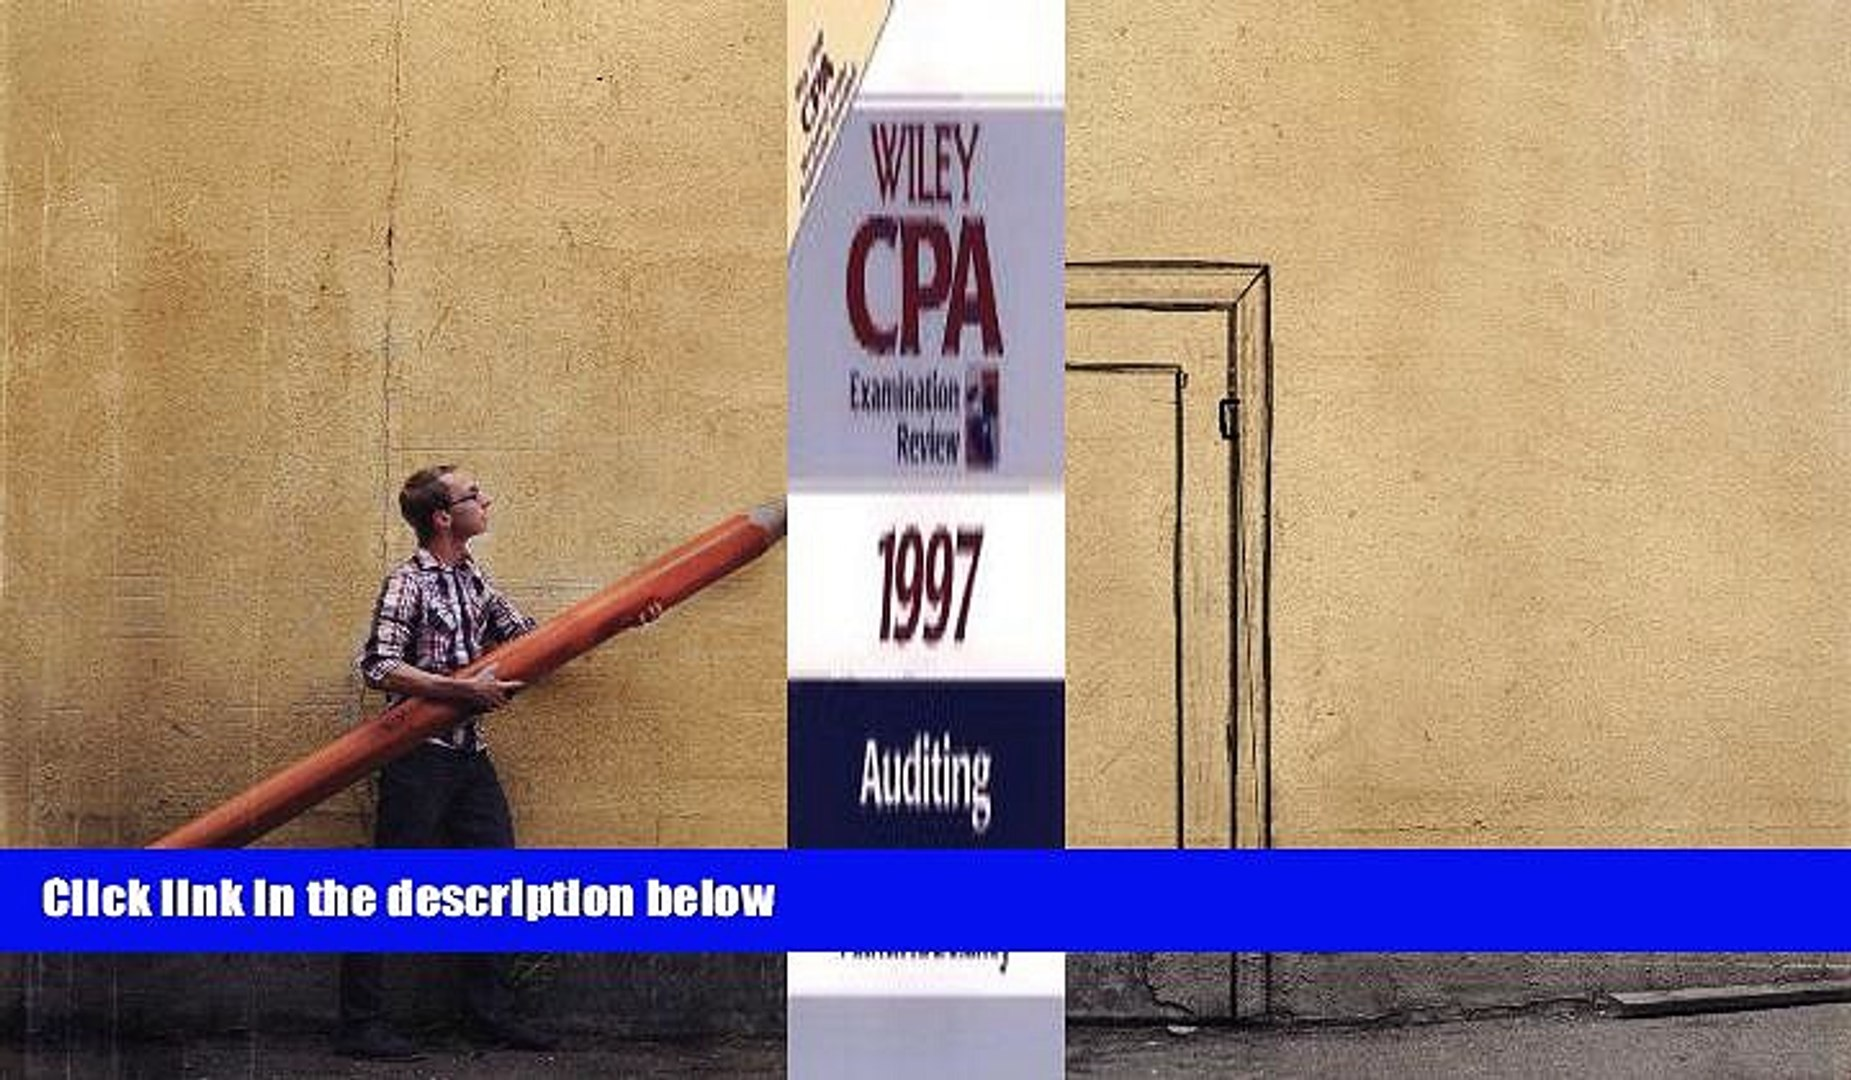 Read Book Auditing 1997 (Wiley Cpa Examination Review 1997) Patrick R. Delaney  For Kindle